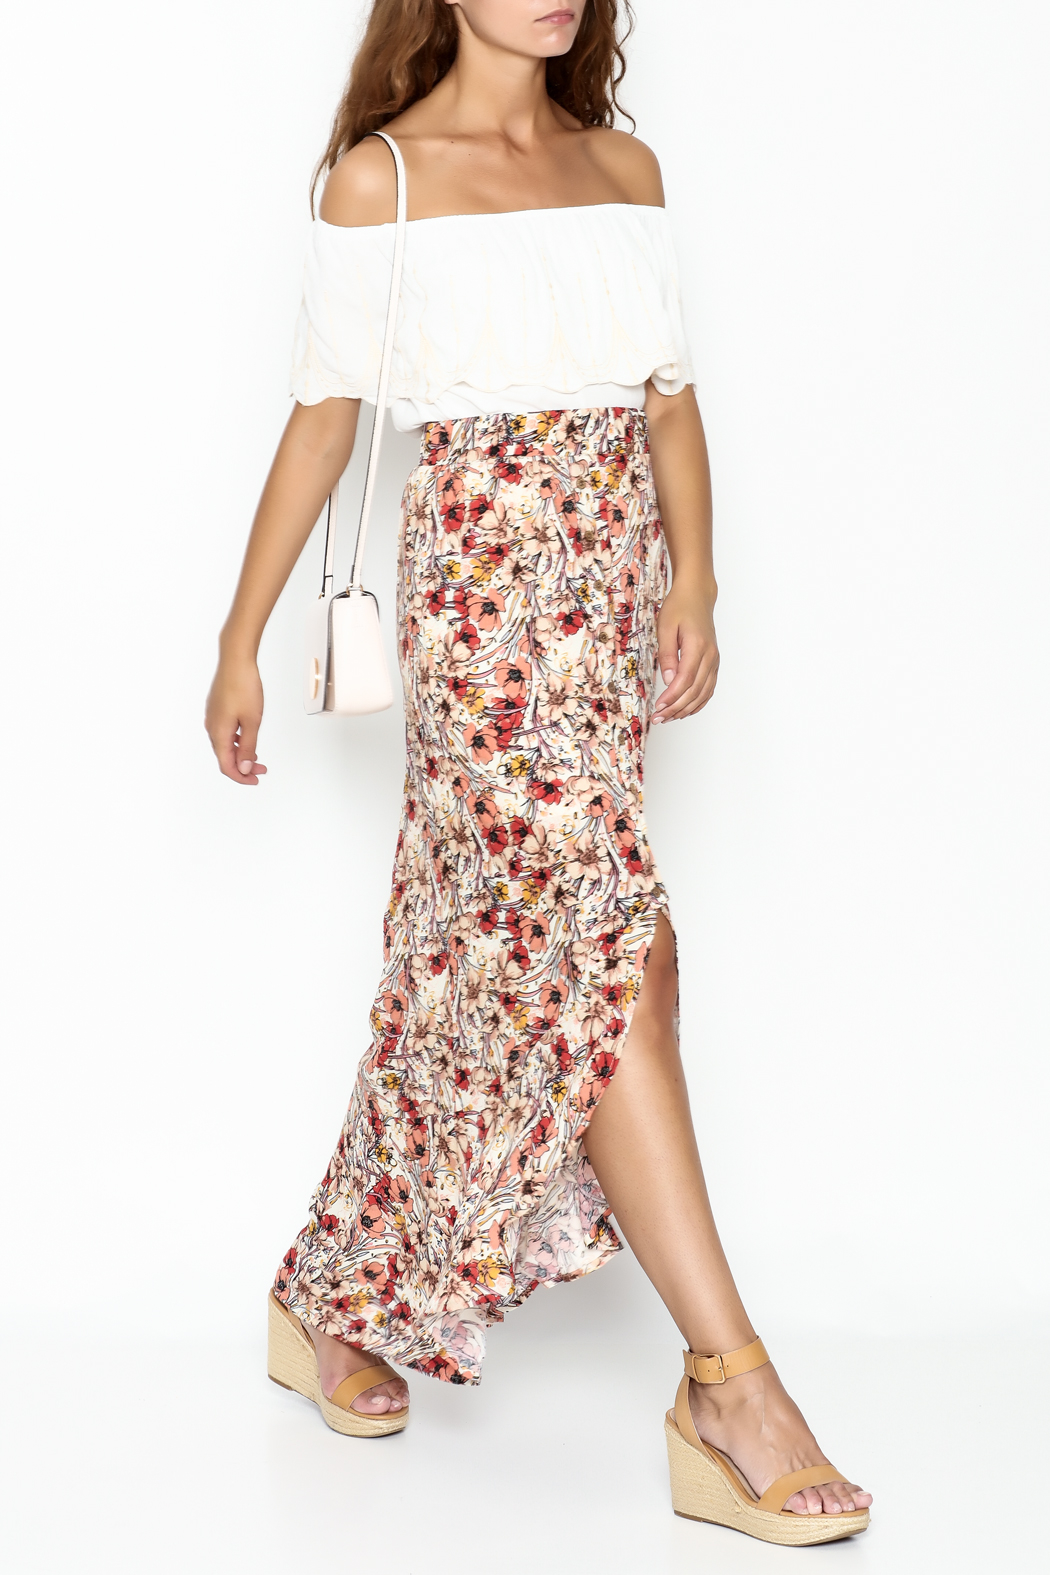 lelis Floral Wrap Skirt - Side Cropped Image